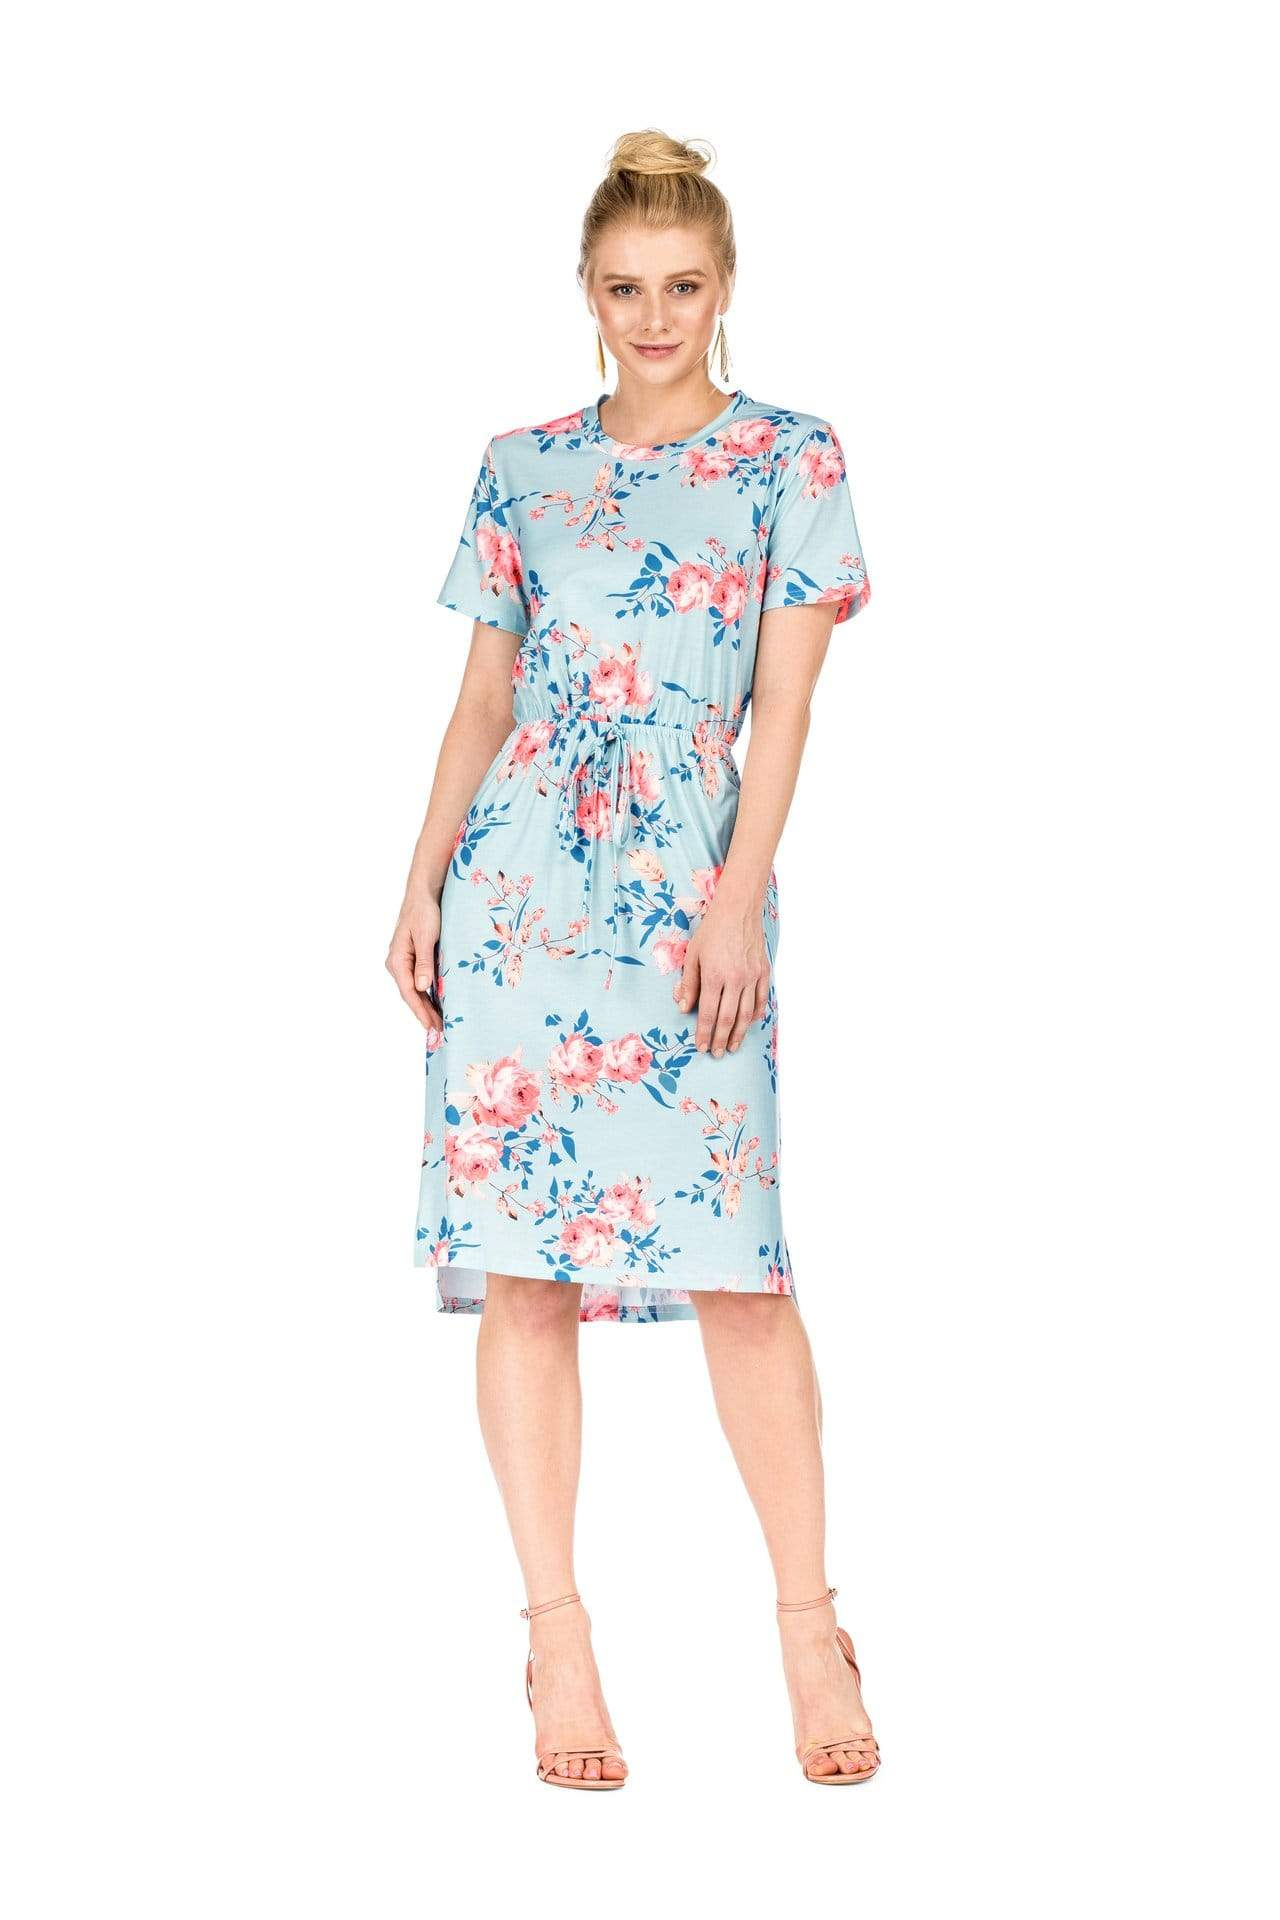 DAILYHAUTE Women's dress LIGHT BLUE / S Haute Edition Women's Floral Casual Mid Dress With Pockets